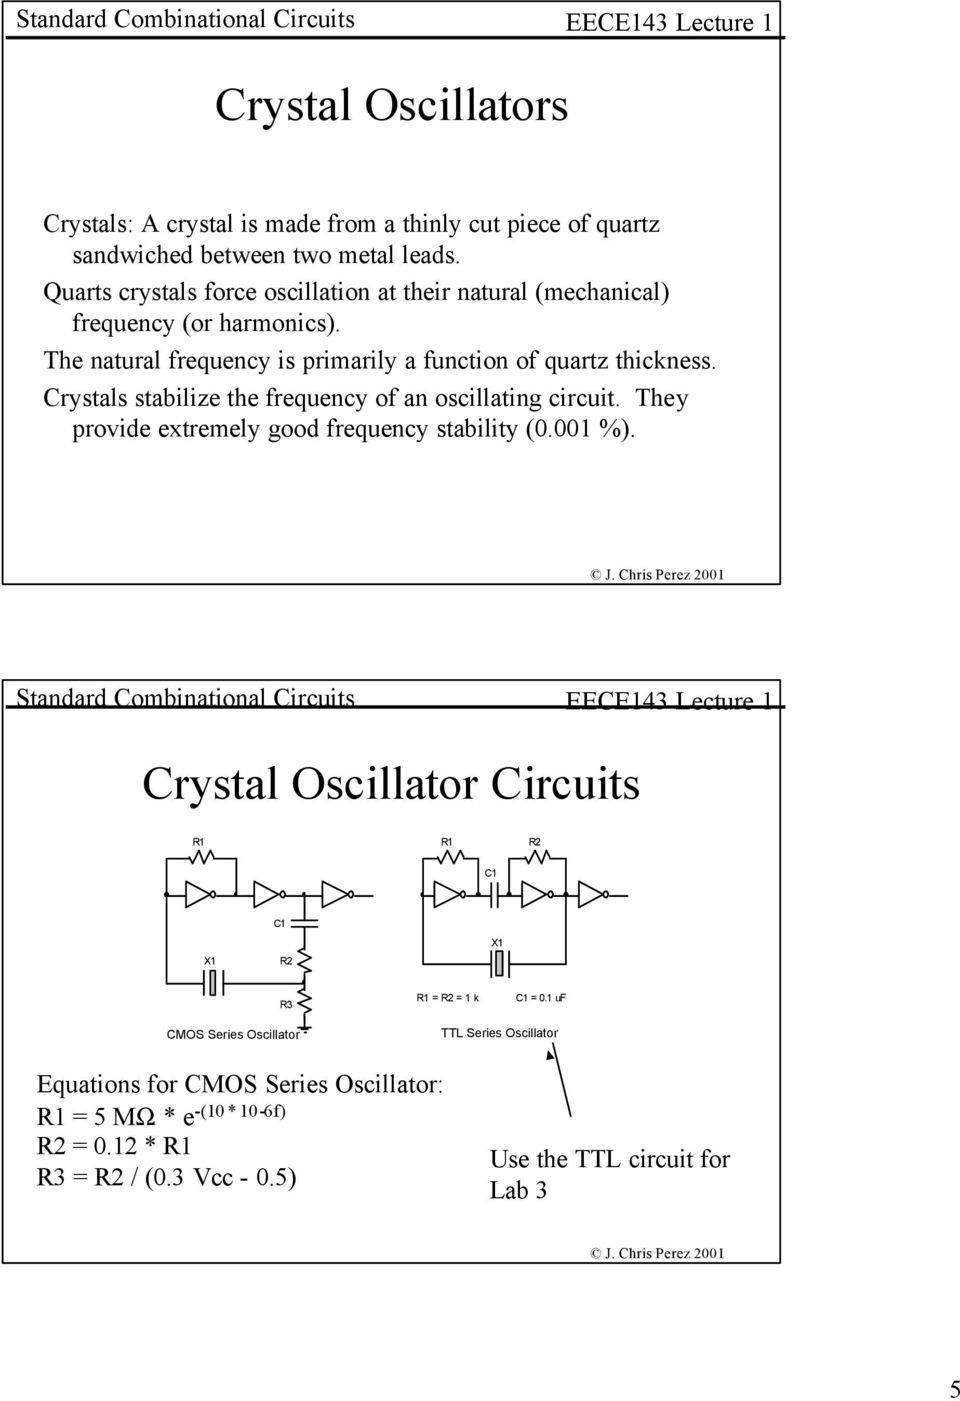 A Lesson On Digital Clocks One Shots And Counters Pdf Basic Oscillatory Circuits Electronic Diagram Crystals Stabilize The Frequency Of An Oscillating Circuit They Provide Extremely Good Stability